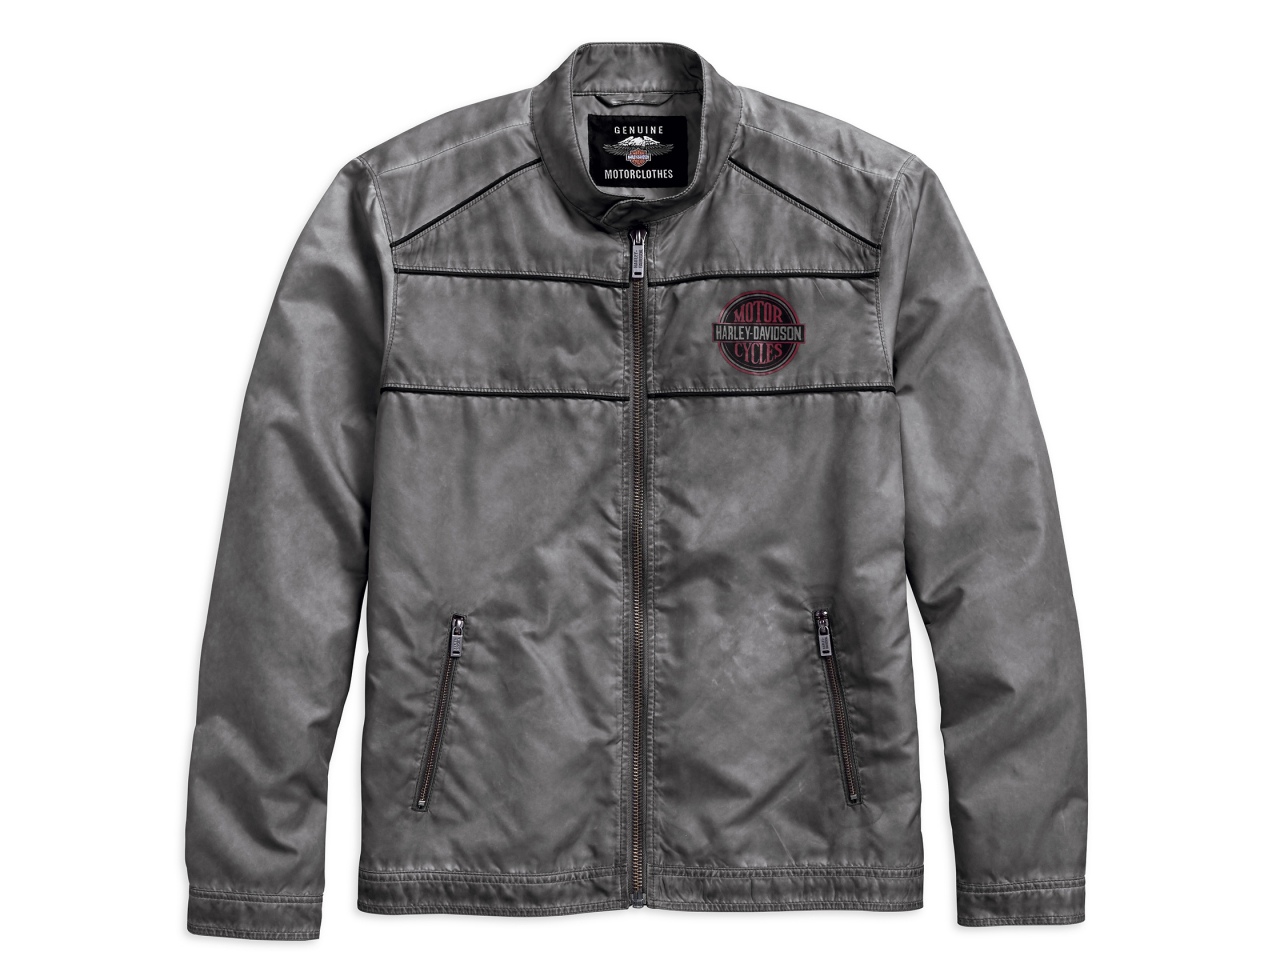 JACKET-GMHR,WASHED DOWN,NYLON,